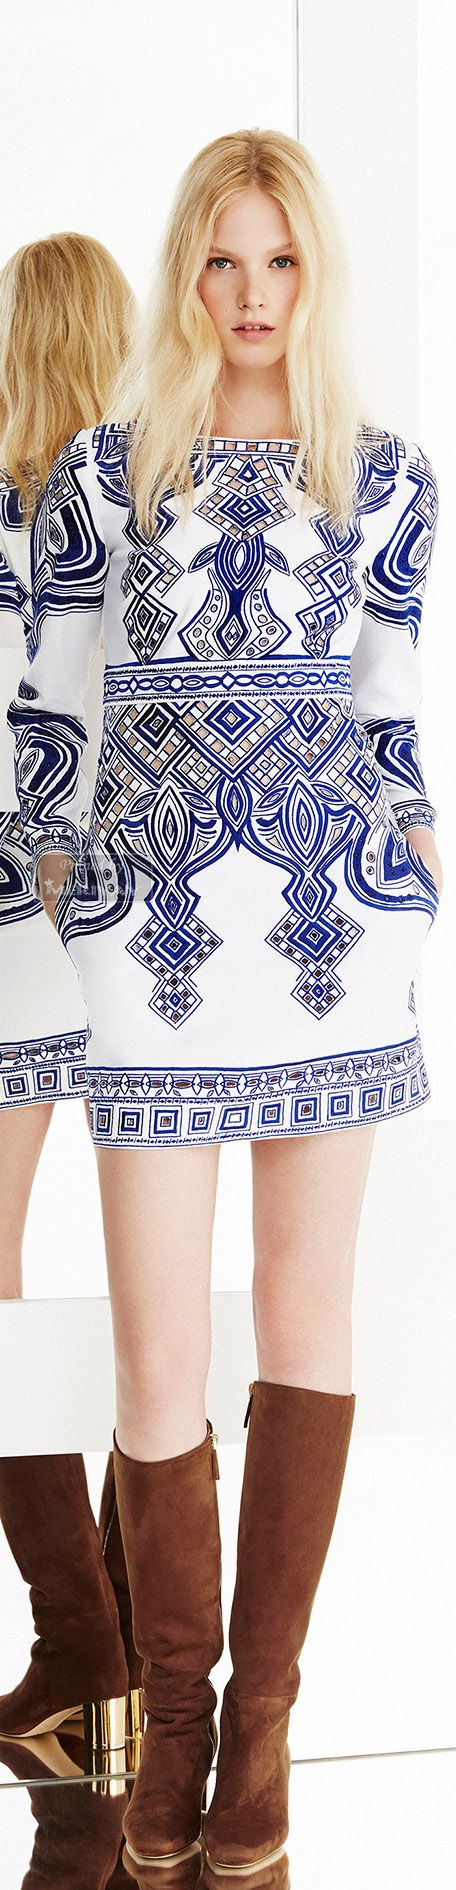 Emilio Pucci Resort 2015 | The House of Beccaria~